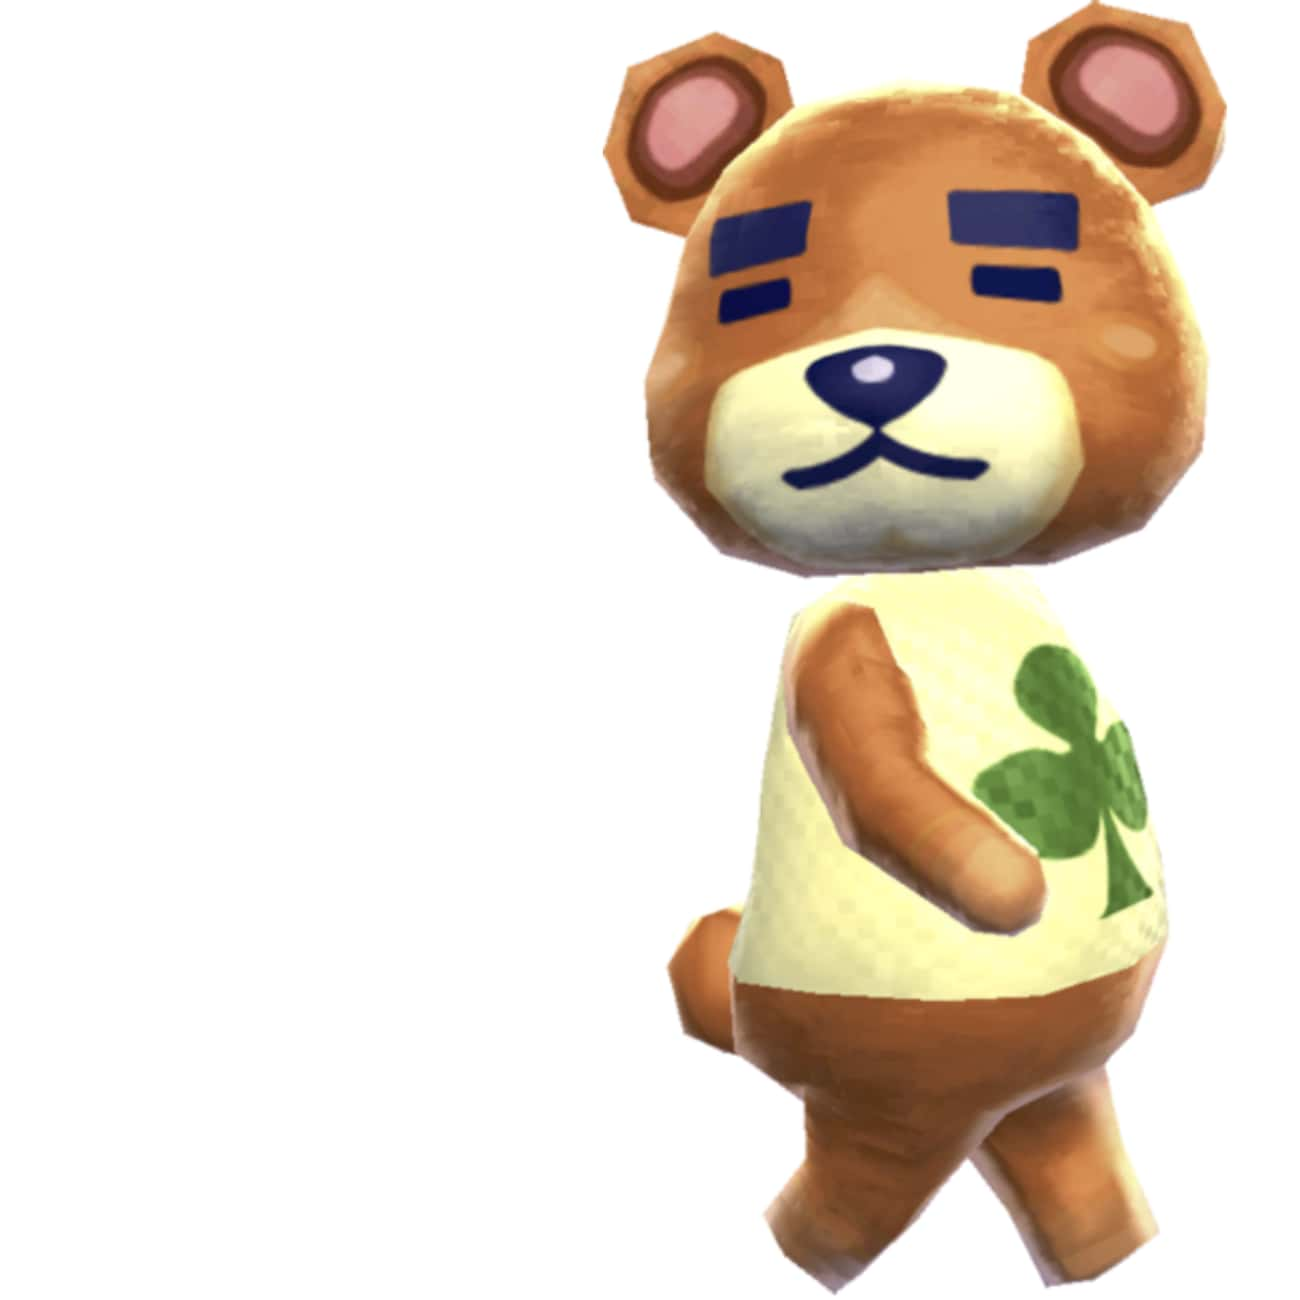 Ranking The 14 Best Bear Villagers In 'Animal Crossing'